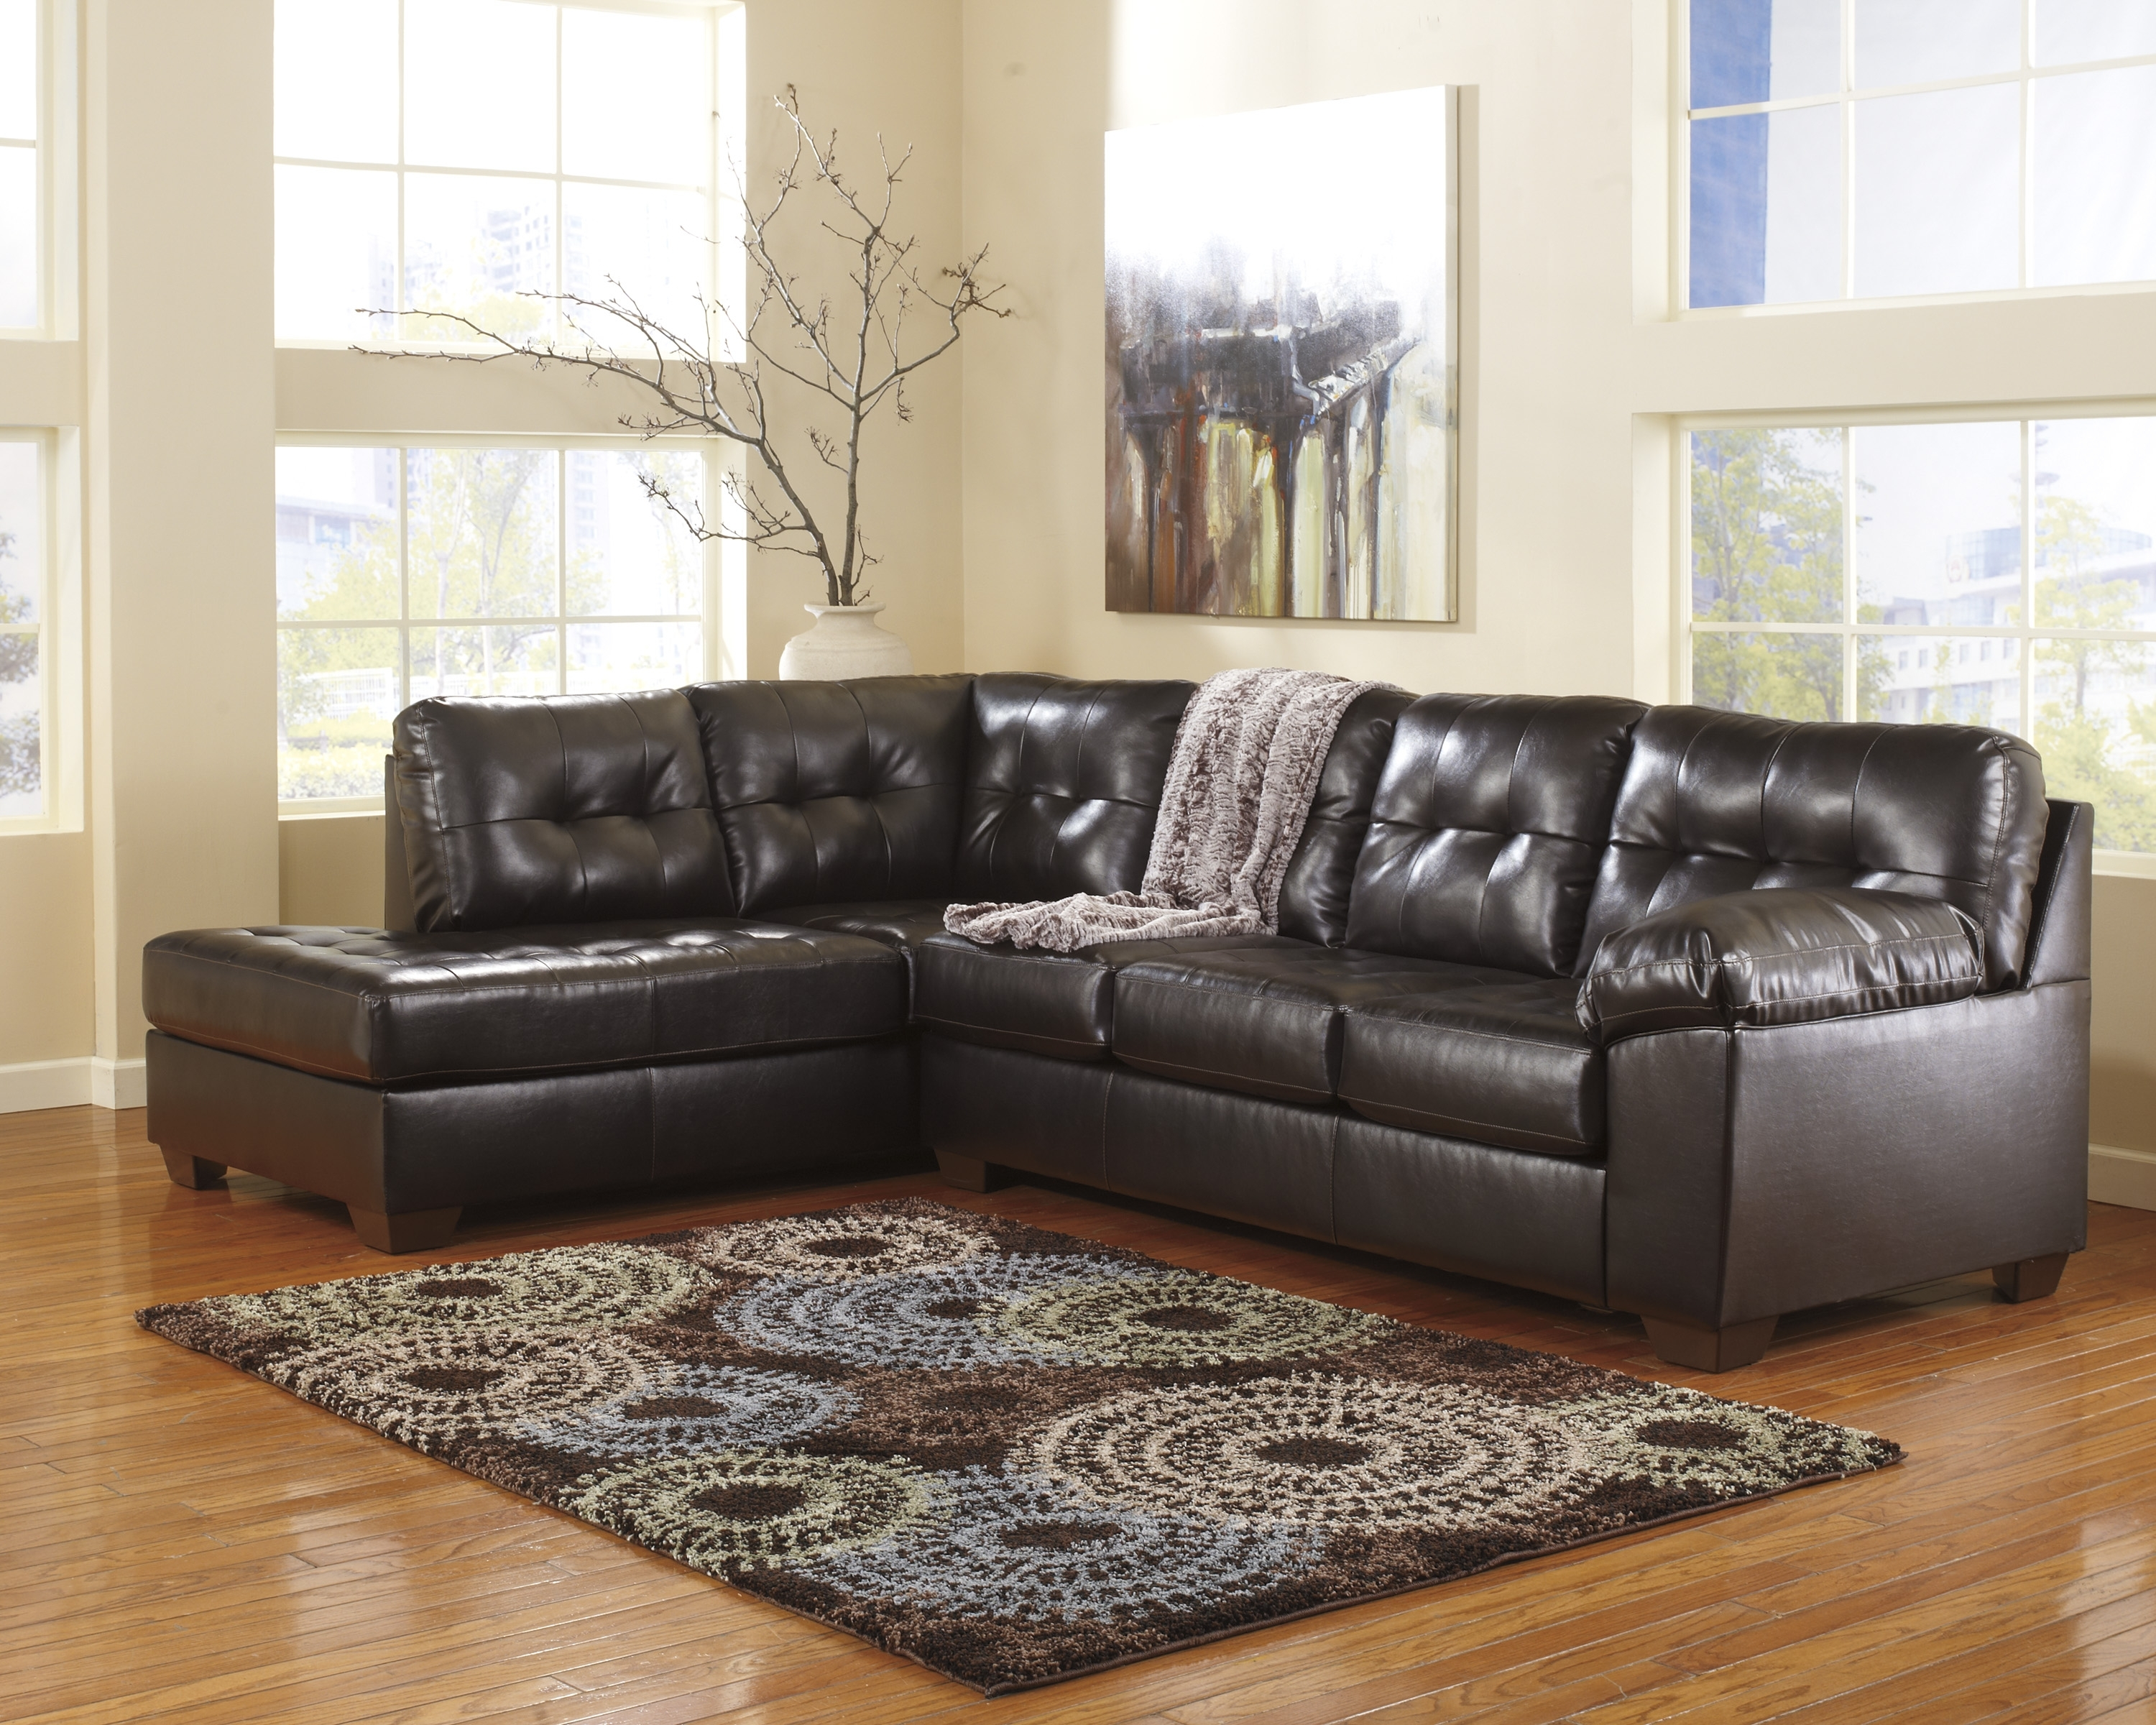 Ashley Furniture Leather Sectionals, Ashley Furniture Sofa Sleepers with regard to Tess 2 Piece Power Reclining Sectionals With Laf Chaise (Image 2 of 30)